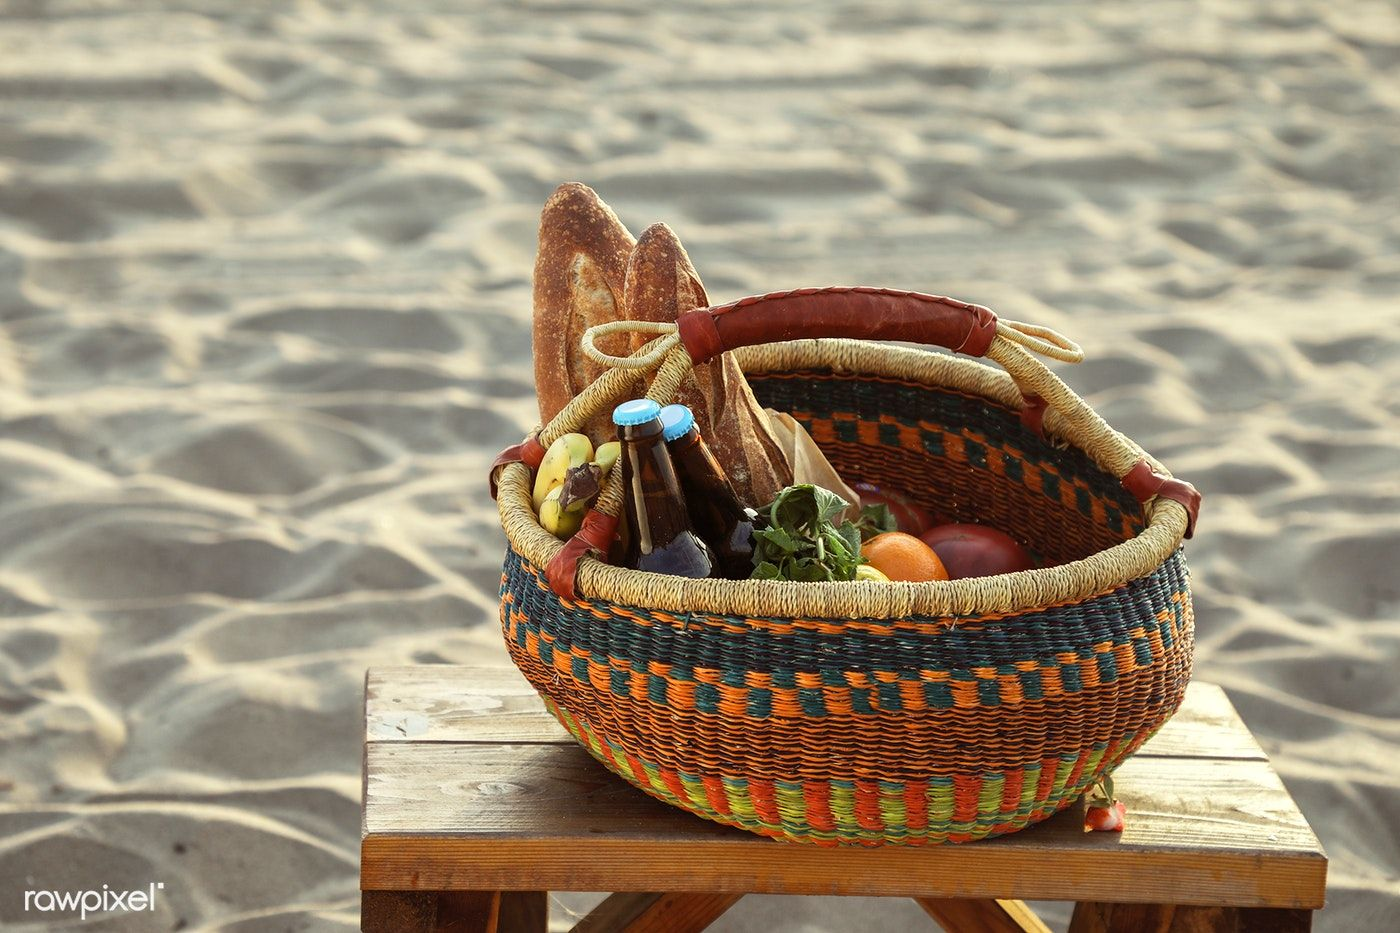 Picnic Basket Filled With Snacks And Drinks At The Beach Free